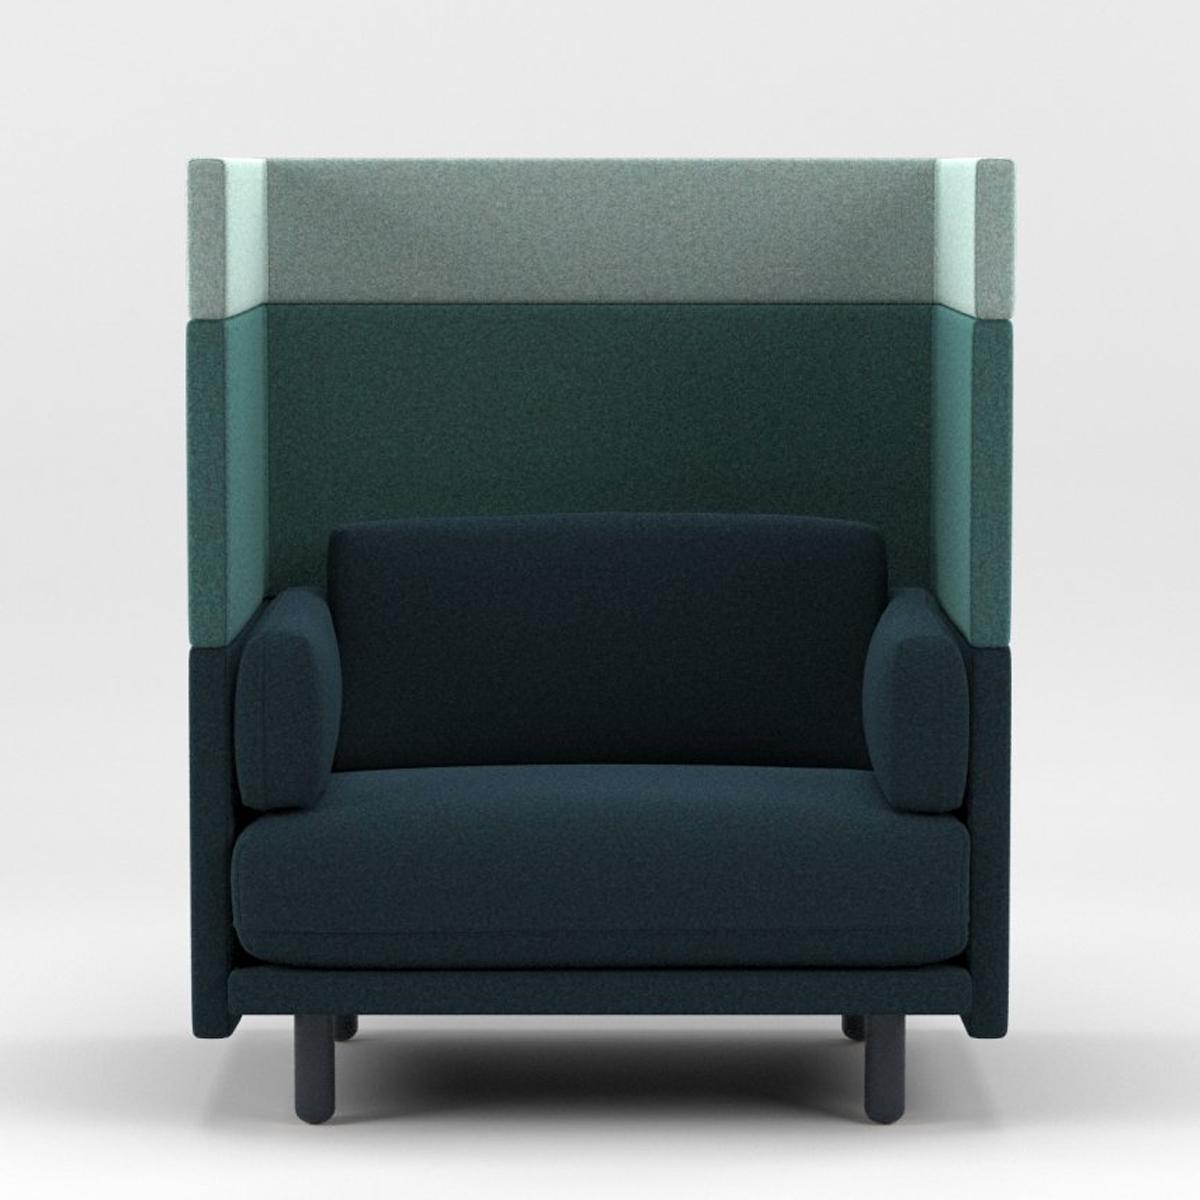 1200_0005_devorm_arnhemloveseat_blue_green